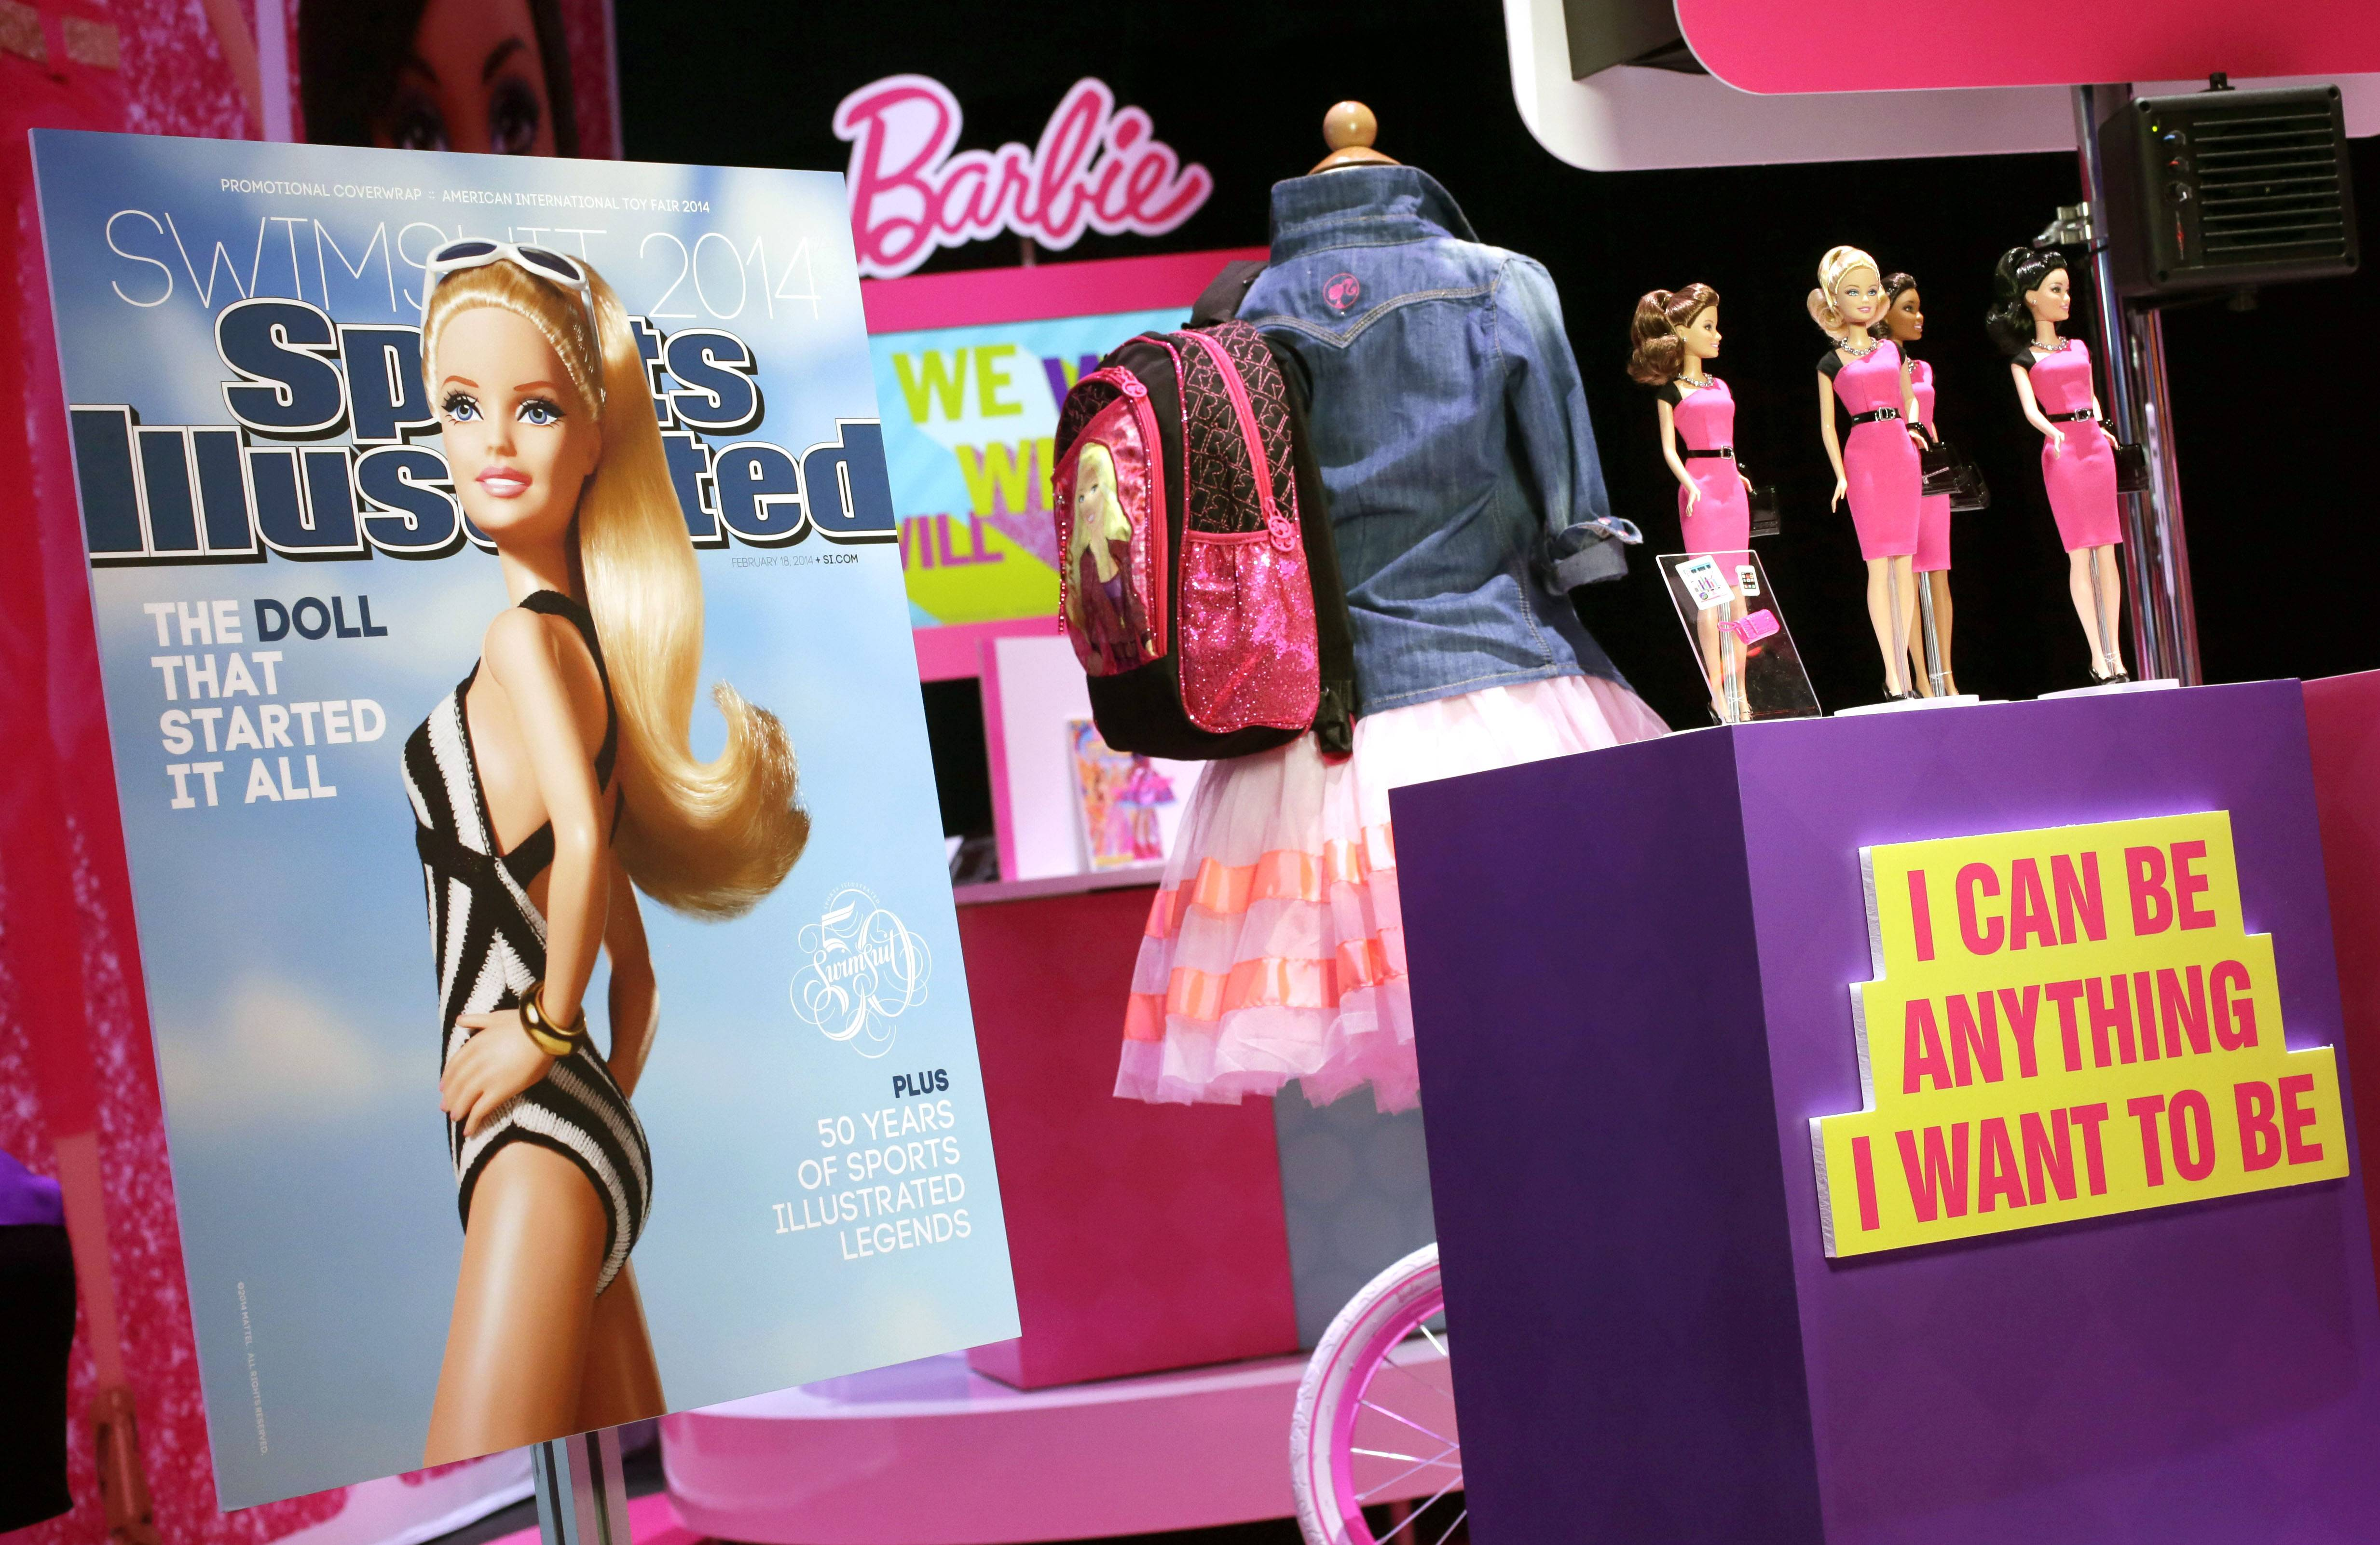 A mock-up cover of Barbie on a Sports Illustrated swimsuit issue is displayed at the Mattel booth at the American International Toy Fair in New York last month. A few weeks after her foray into the Sports Illustrated swimsuit edition, Barbie is entangled in controversy again, this time over her ties with the Girl Scouts.